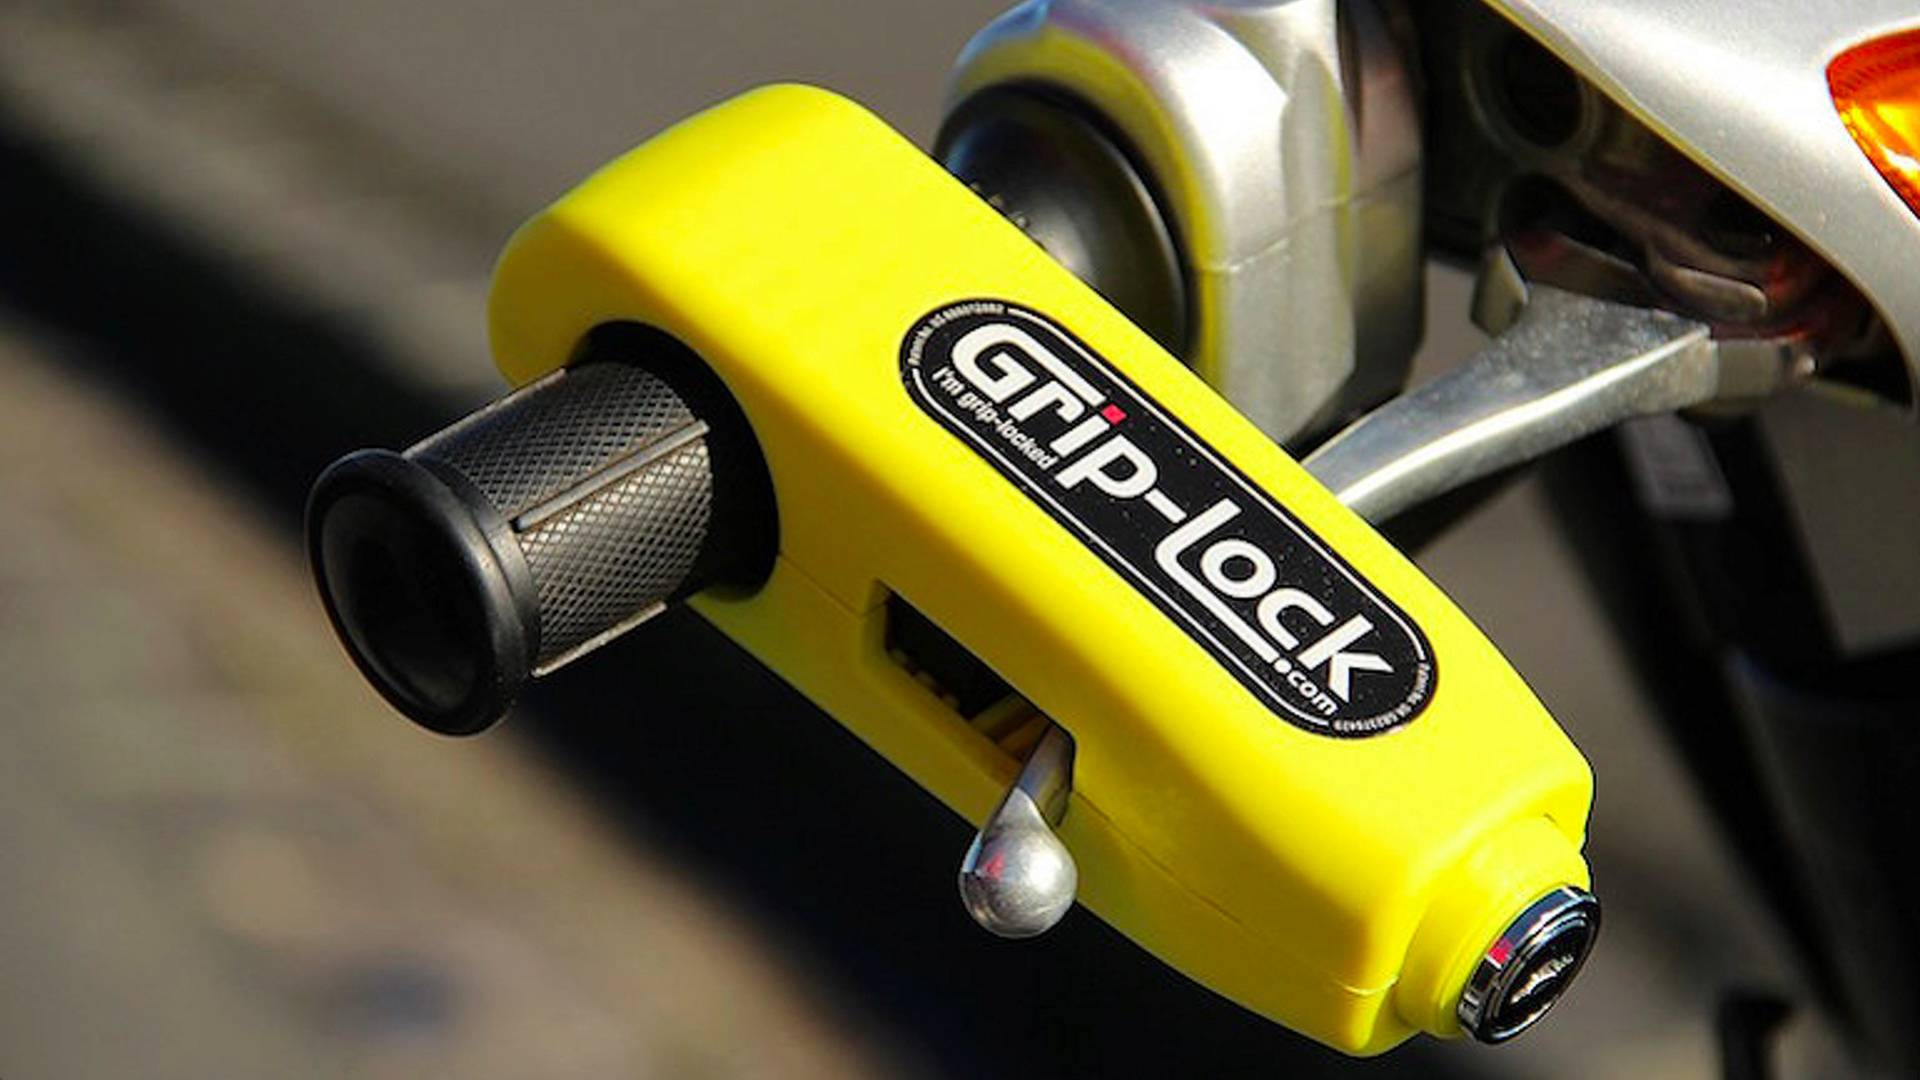 Meet Grip-Lock: The Pocket-Sized Motorcycle Anti-Theft Device